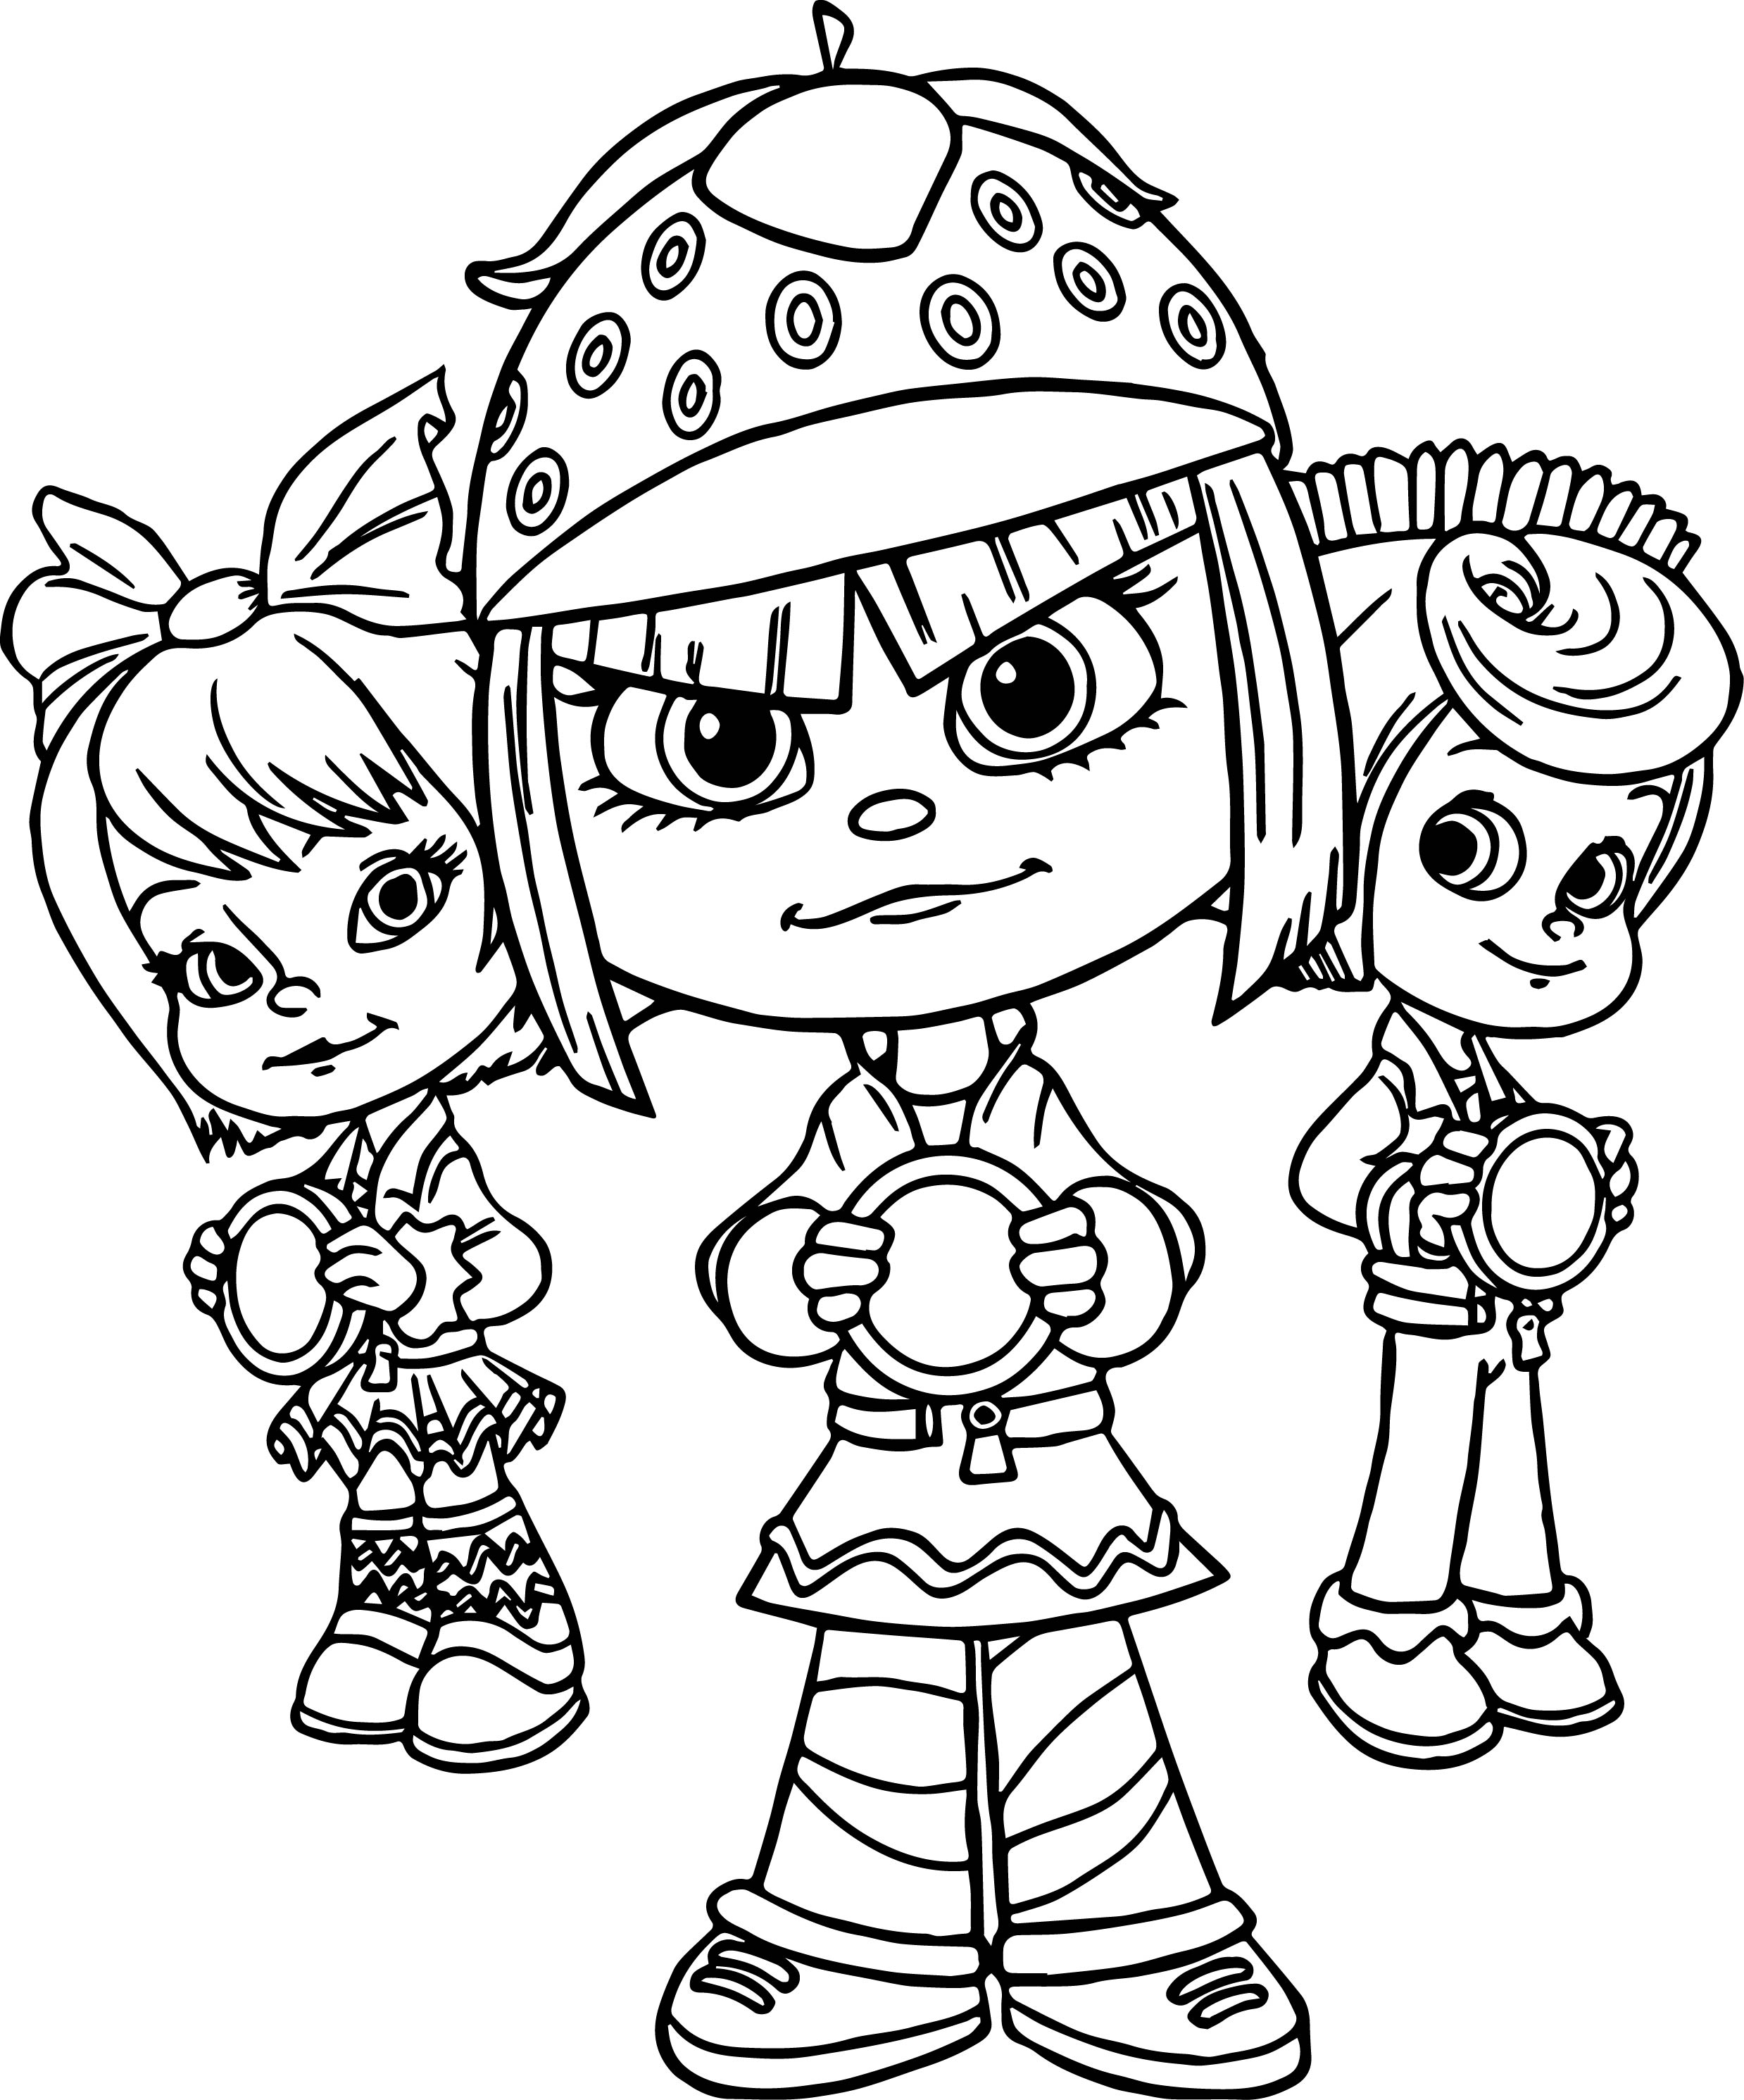 Wreck It Ralph Team Coloring Page